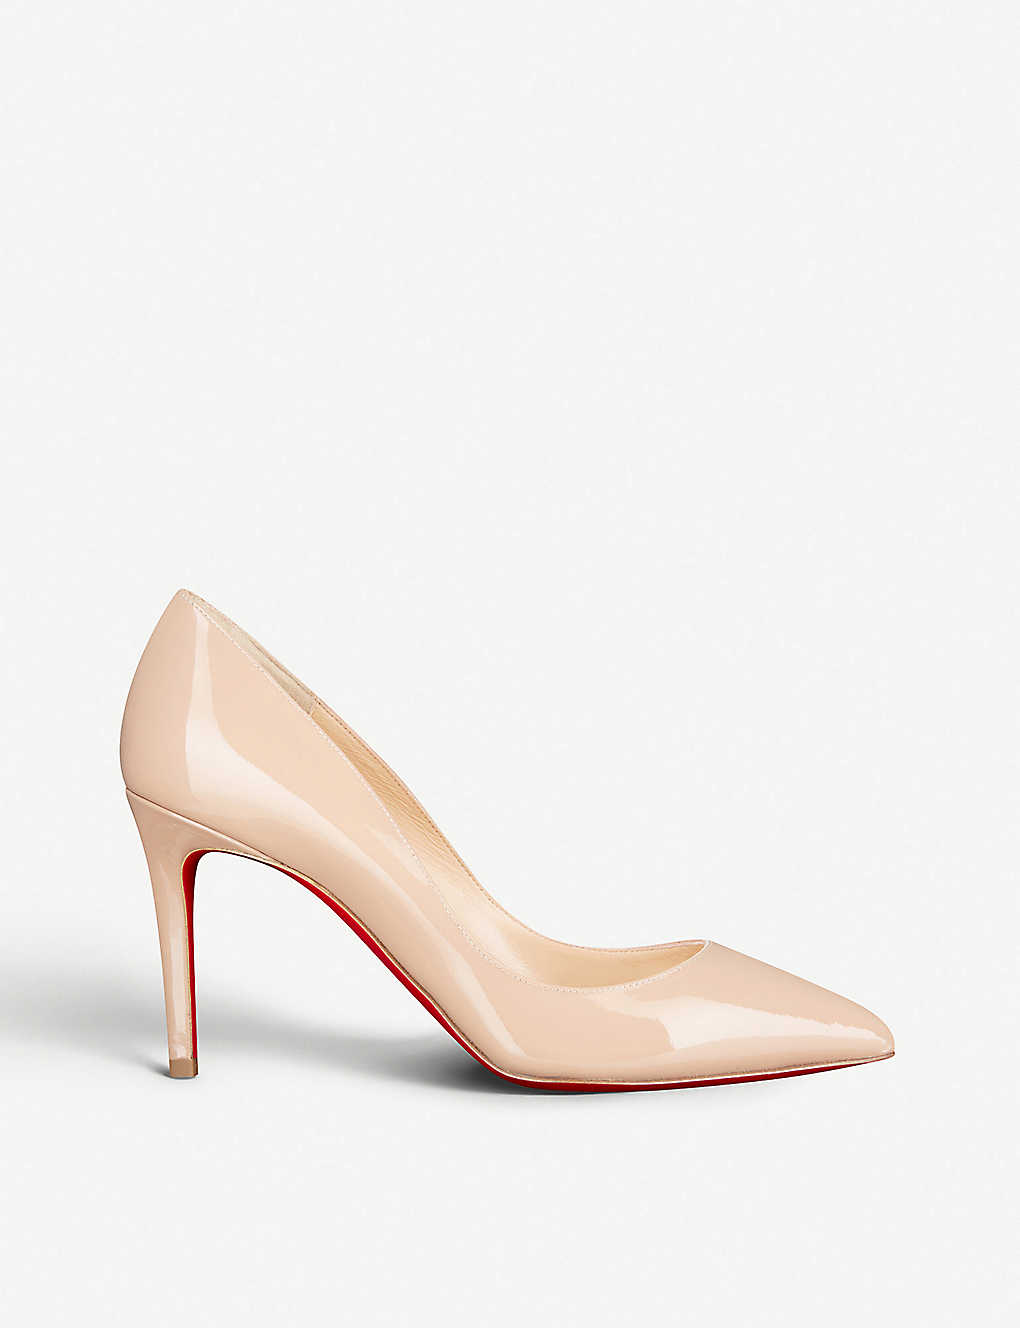 0efea61ccd89 CHRISTIAN LOUBOUTIN - Pigalle 85 patent calf